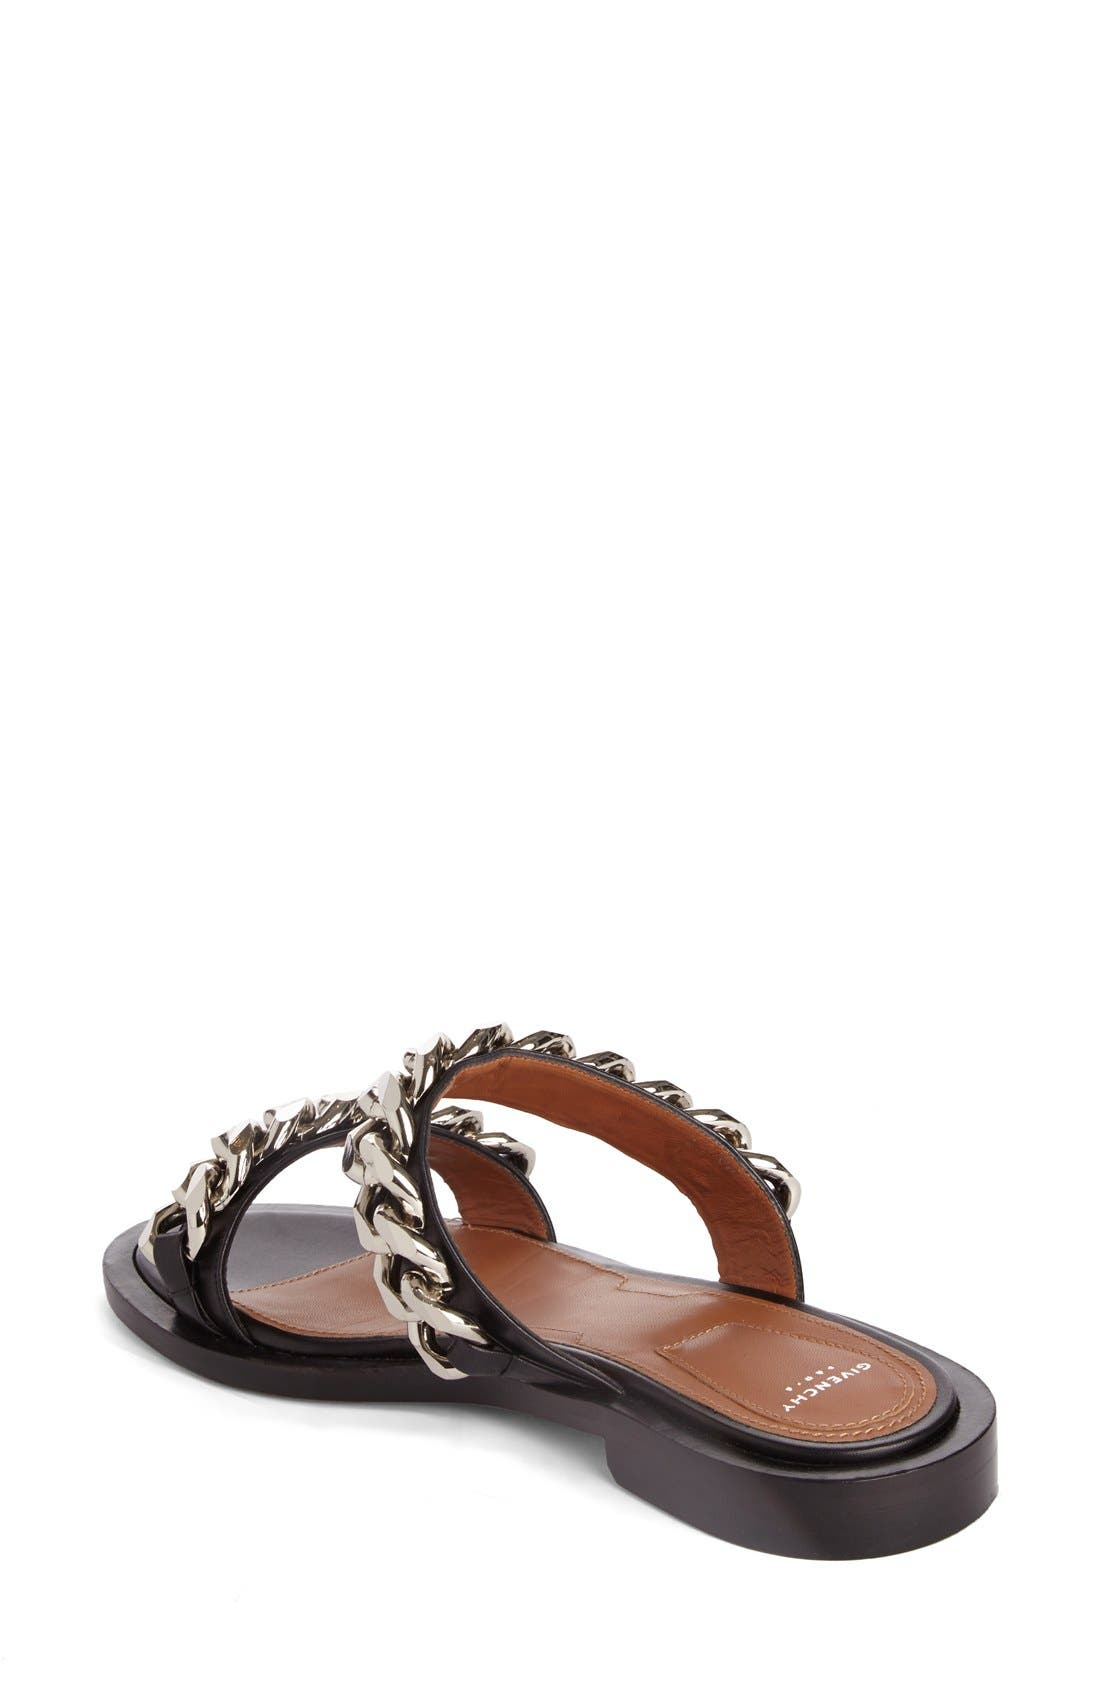 Alternate Image 2  - Givenchy Double Chain Slide Sandal (Women)